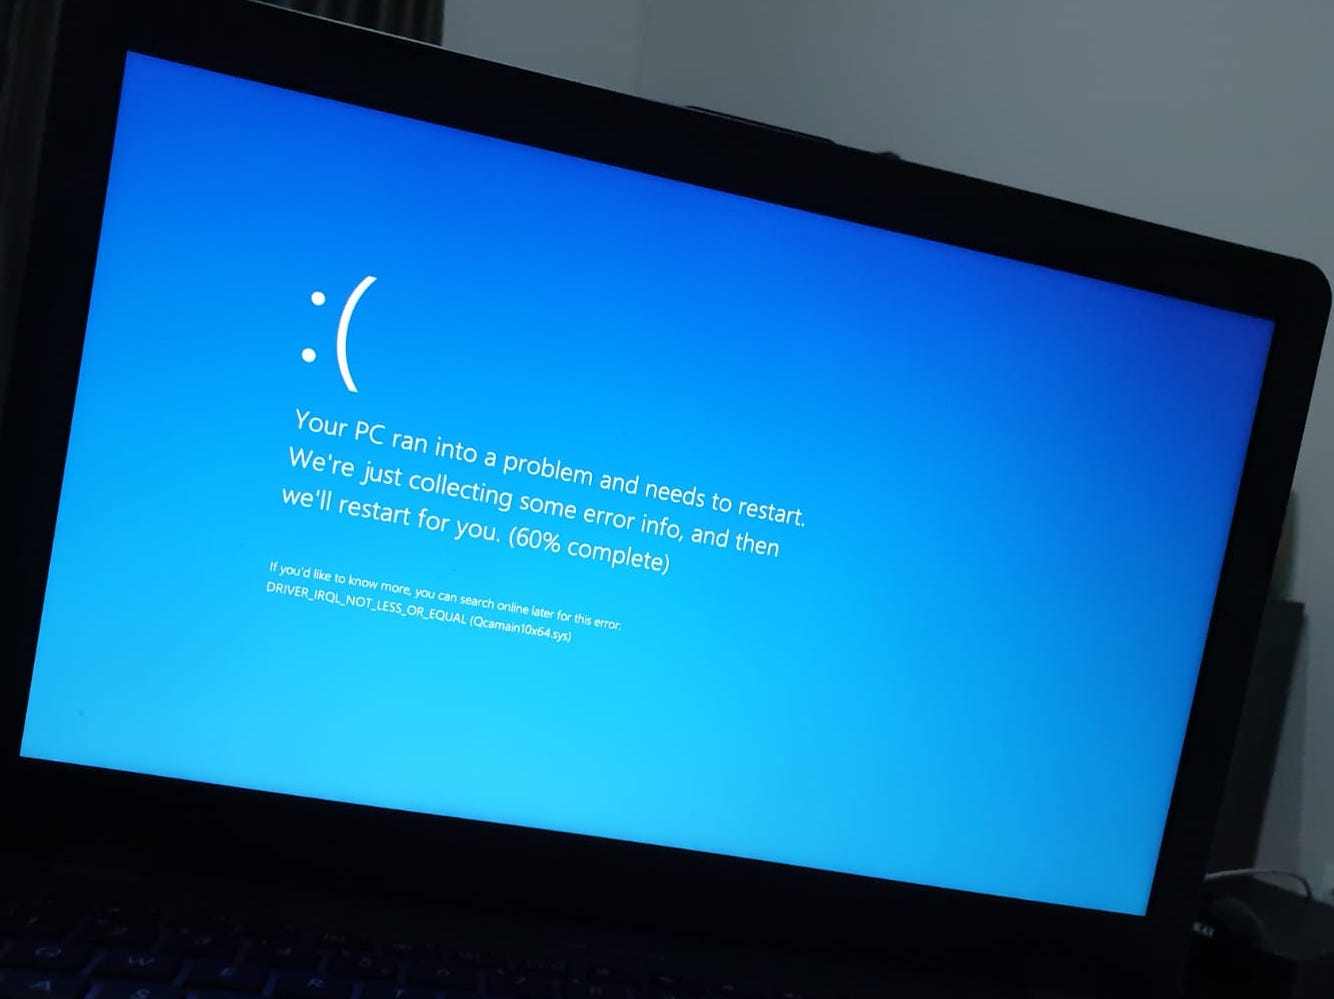 How to fix the BSOD (BLUE SCREEN) error